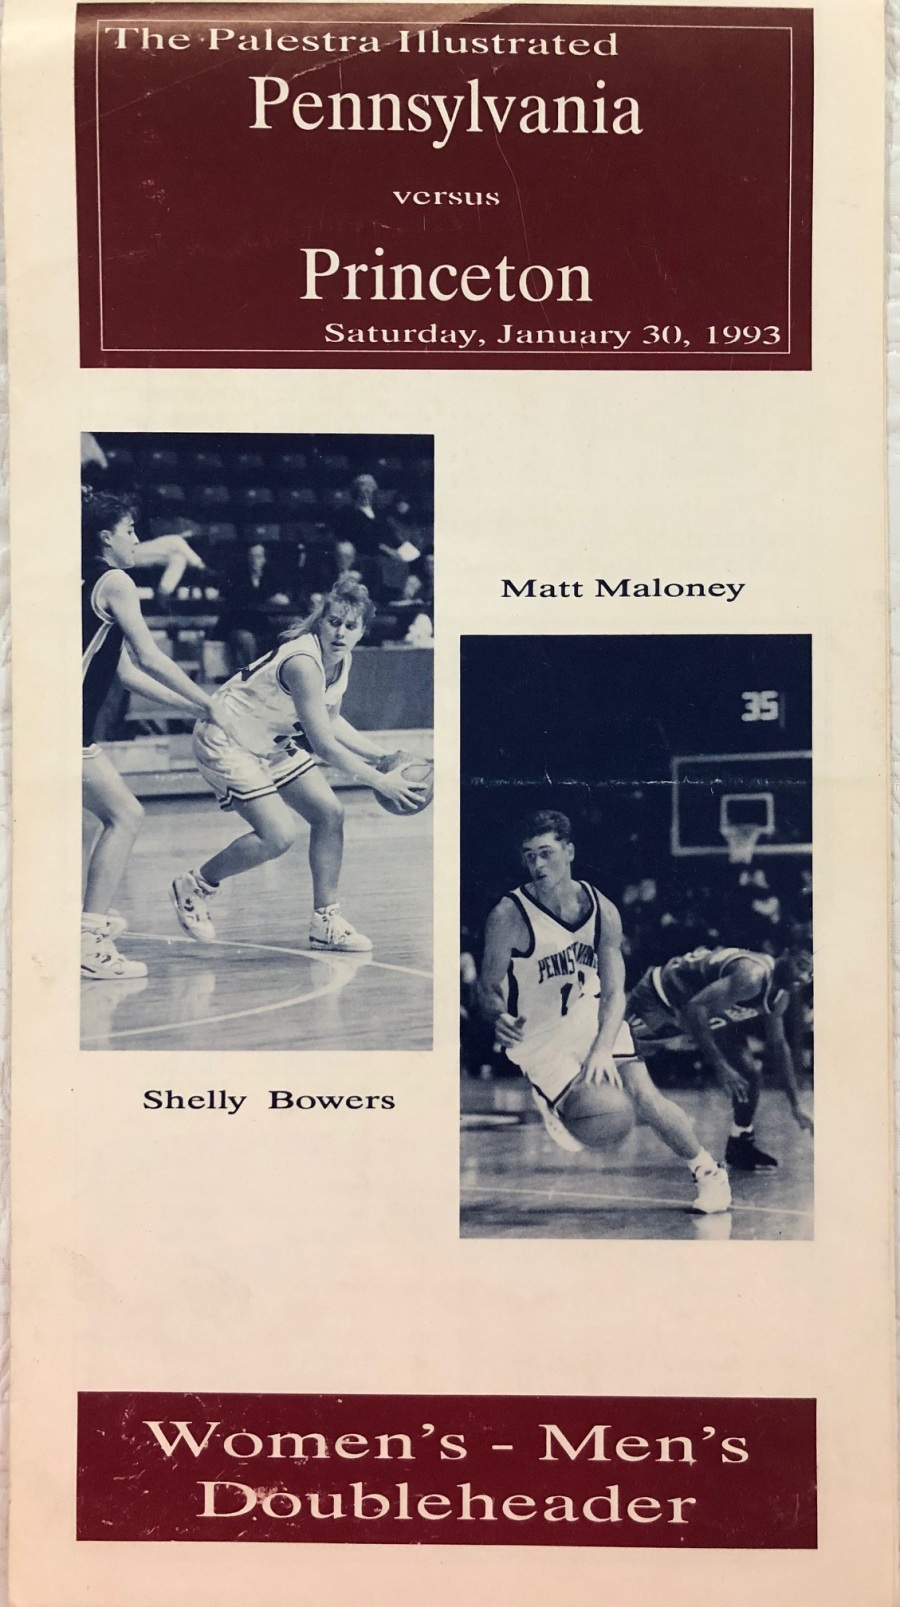 Program from Penn vs. Princeton men's and women's basketball games at the Palestra on January 30, 1993